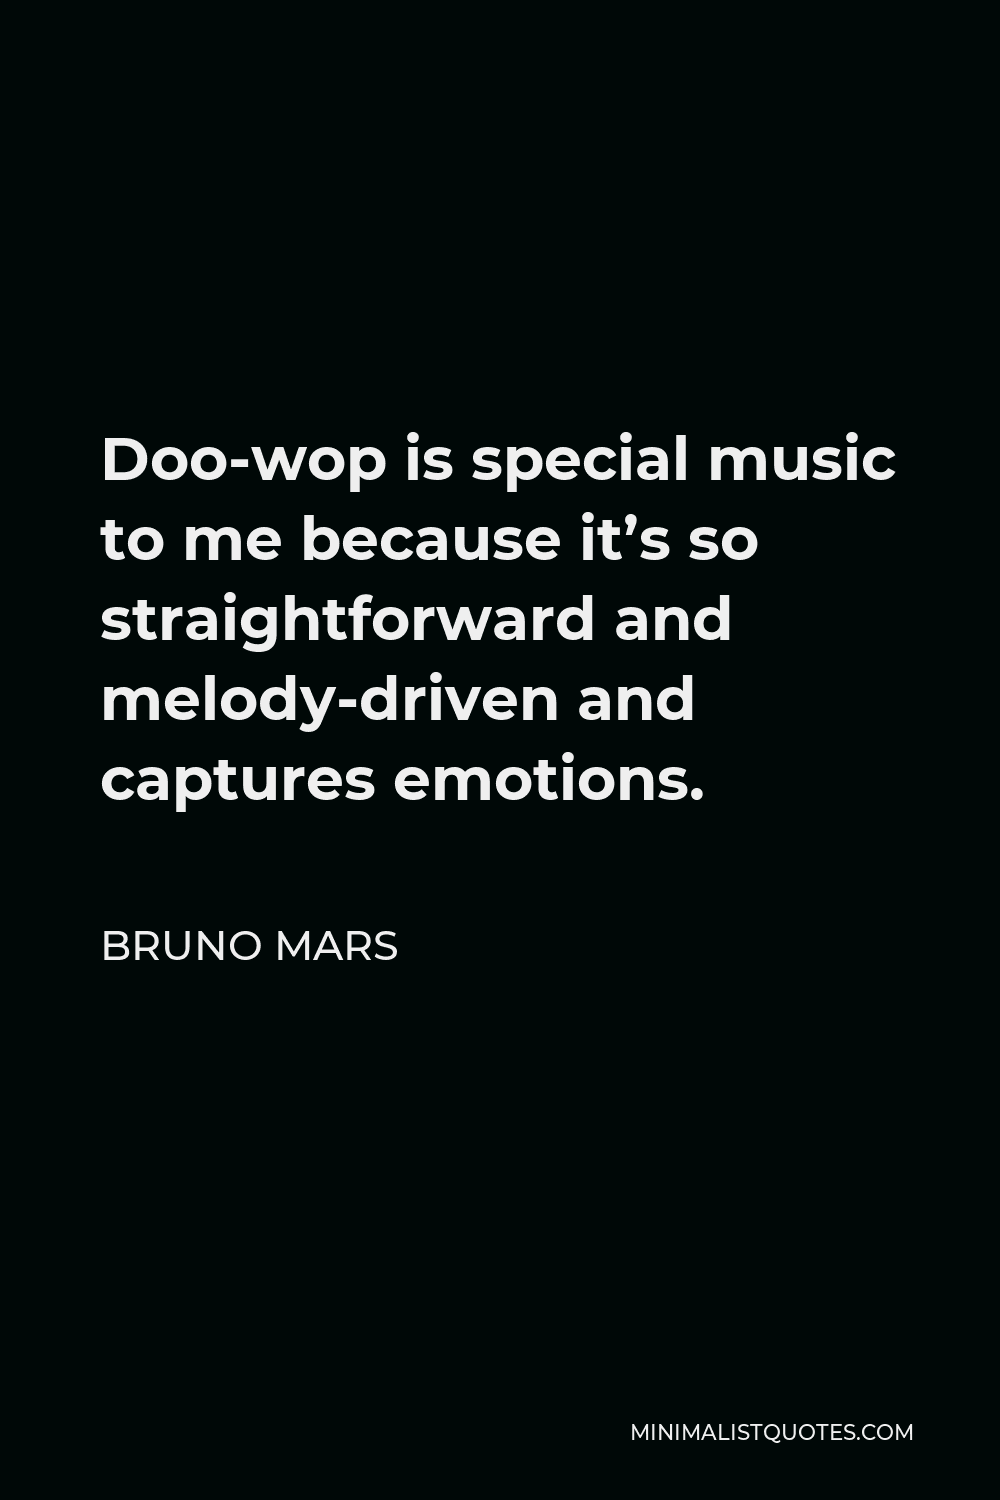 Bruno Mars Quote - Doo-wop is special music to me because it's so straightforward and melody-driven and captures emotions.